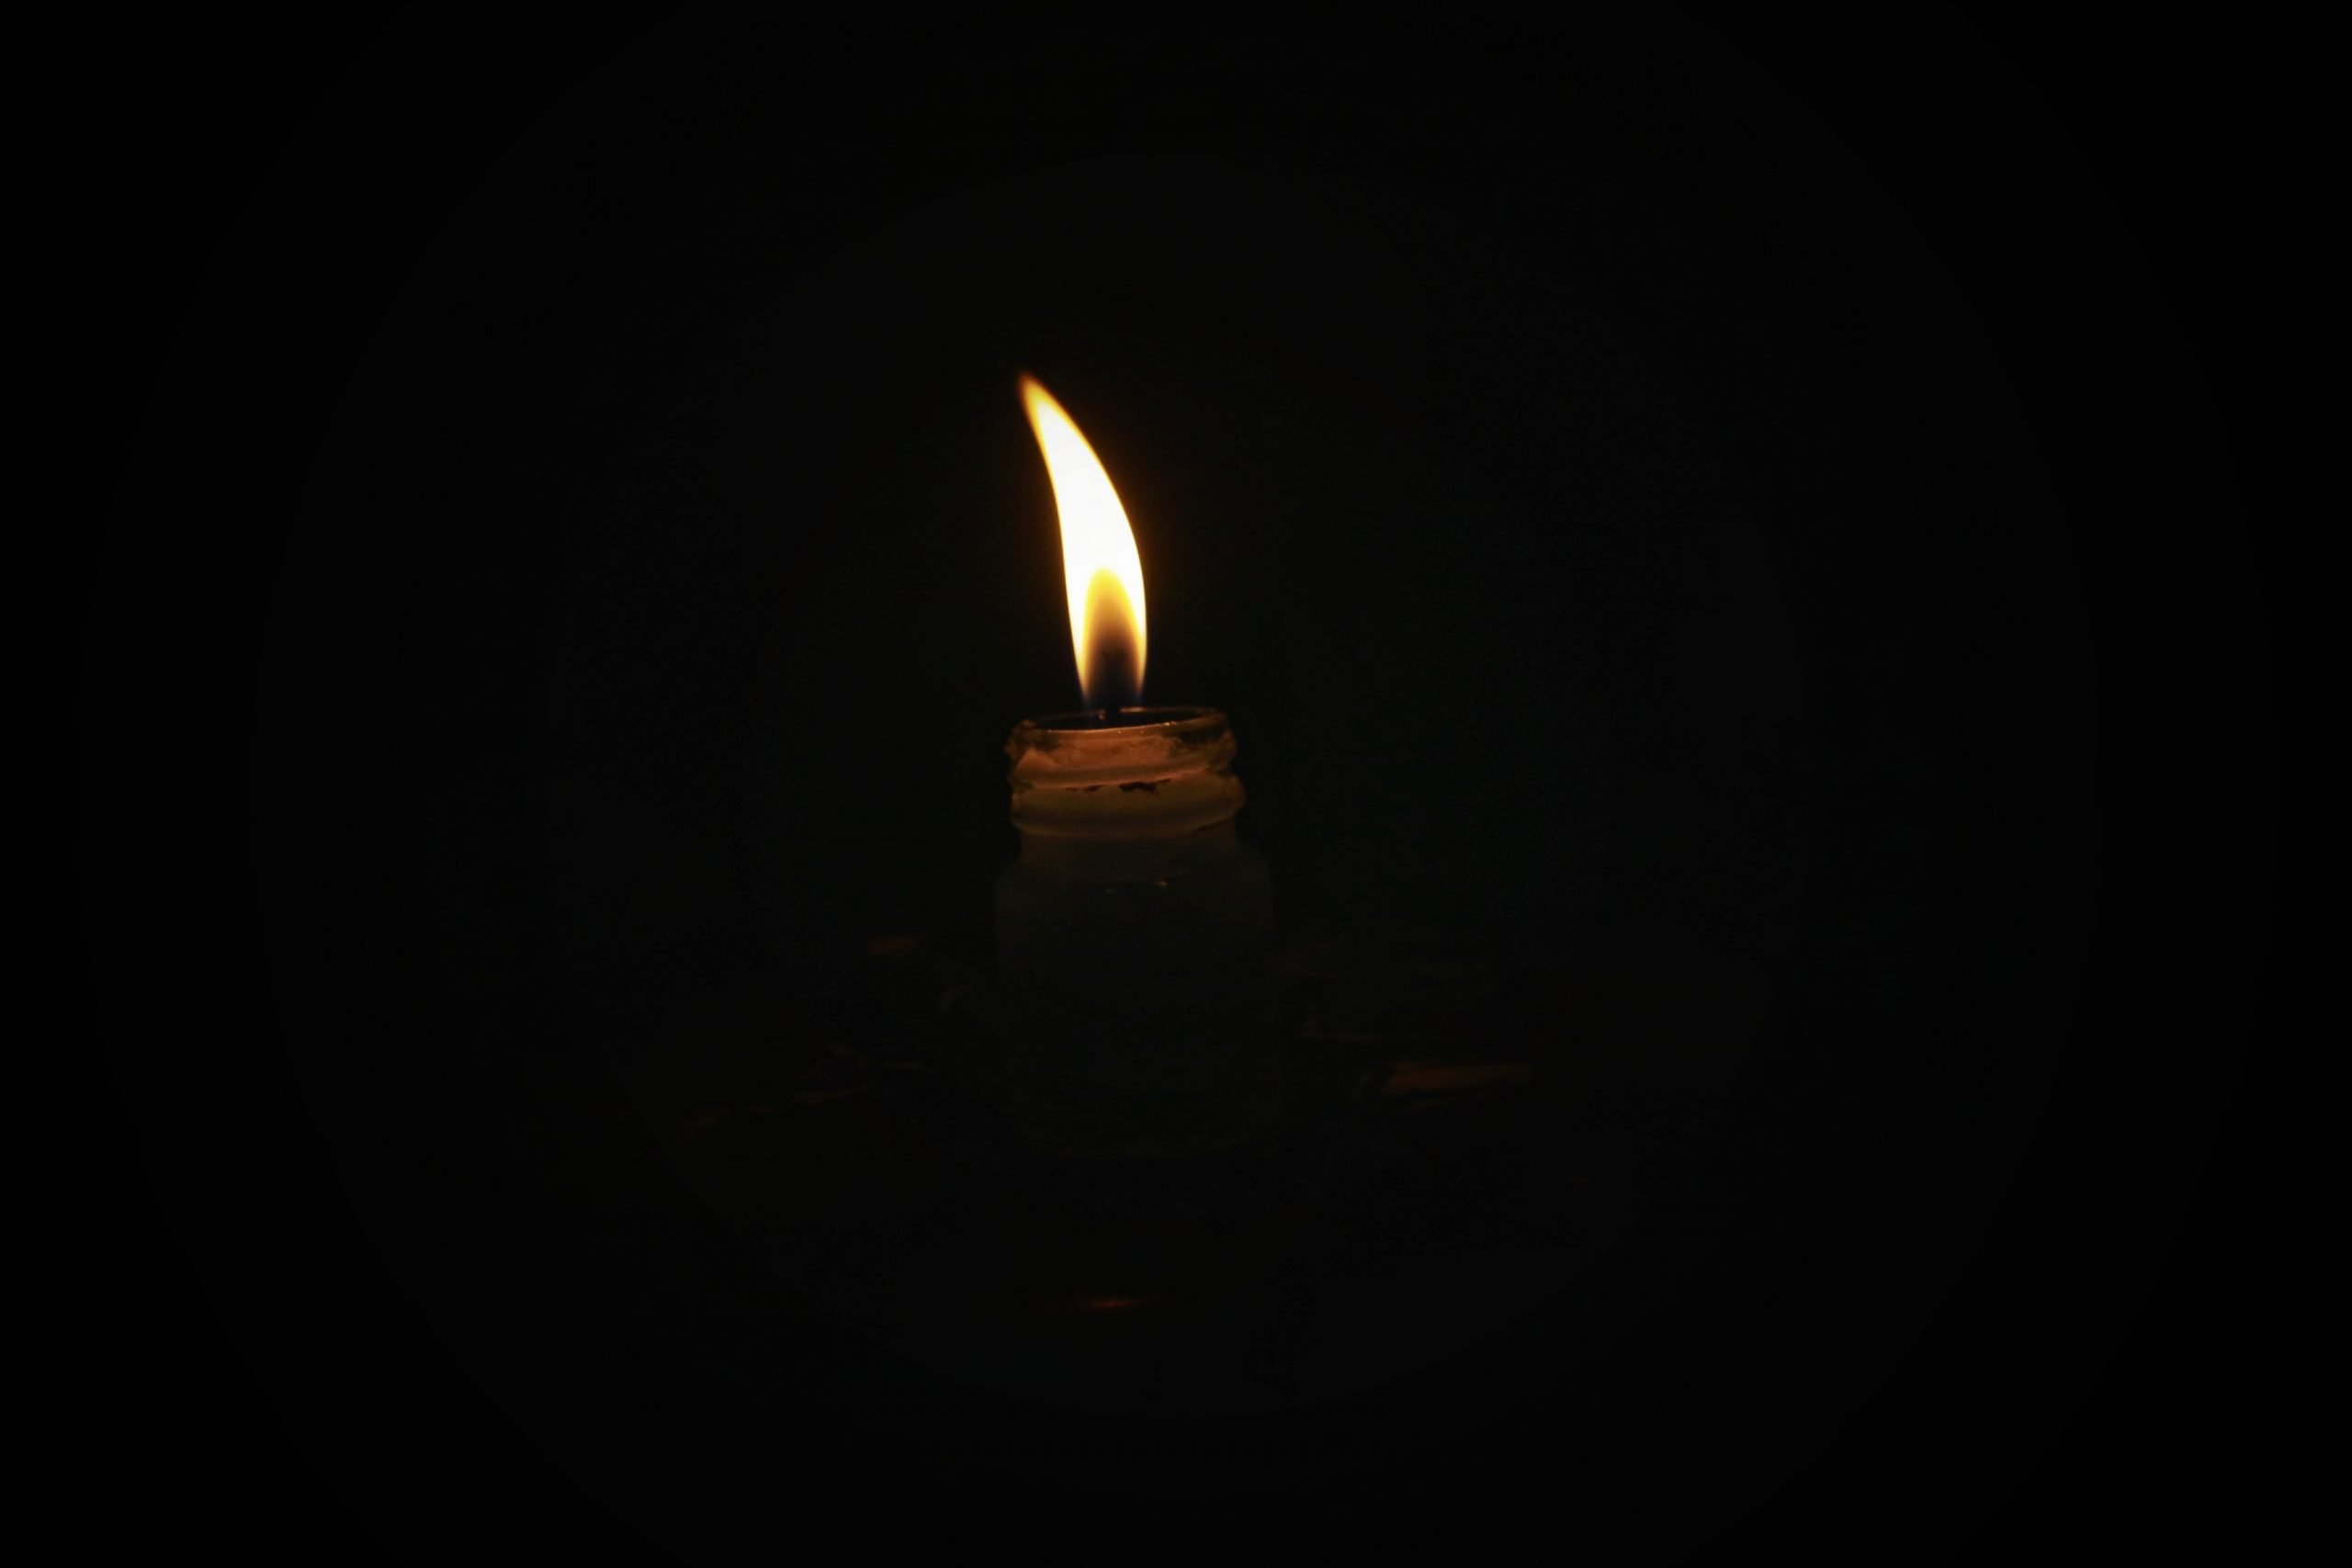 A candle flame